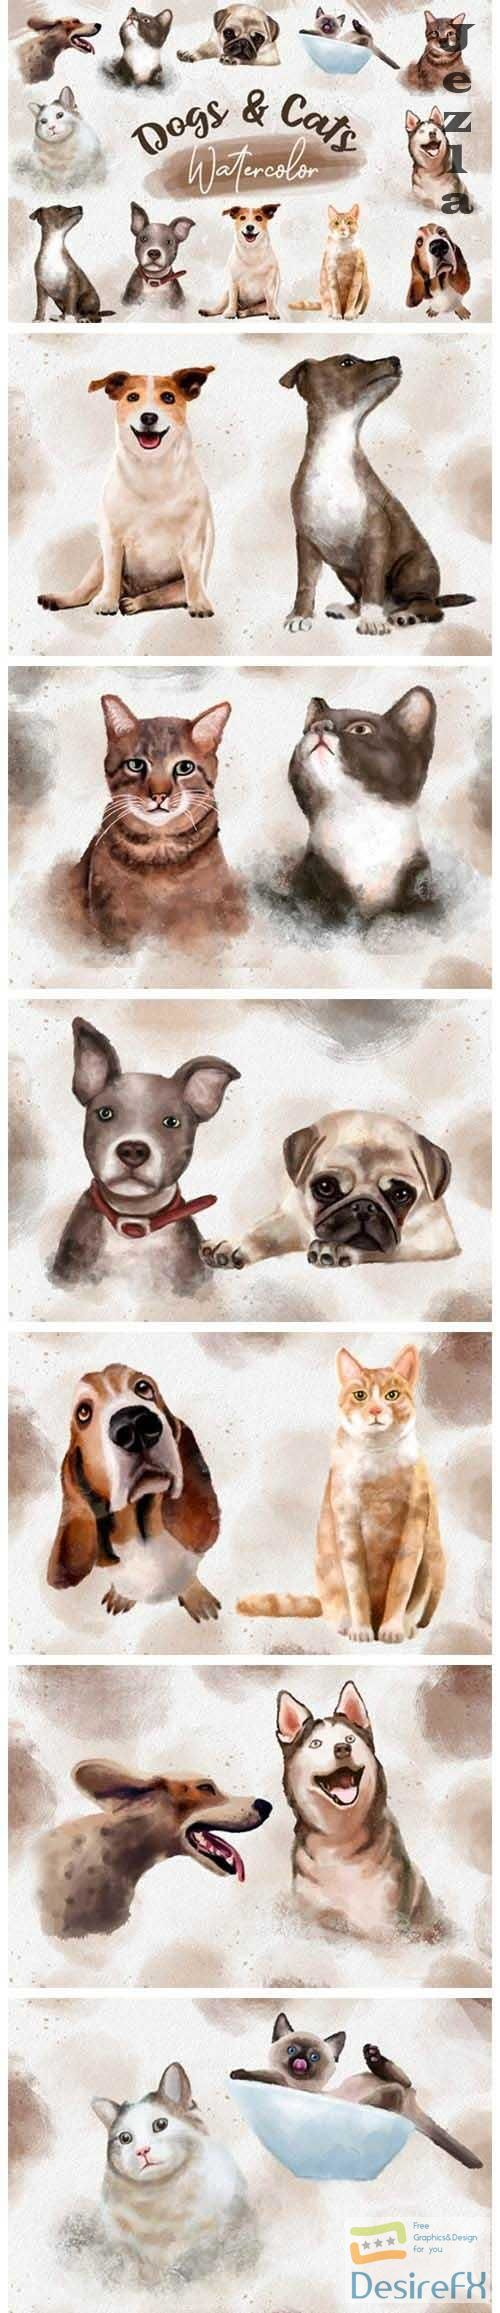 Dogs and Cats Watercolor Collection Clipart Bundle PNG - 1125968